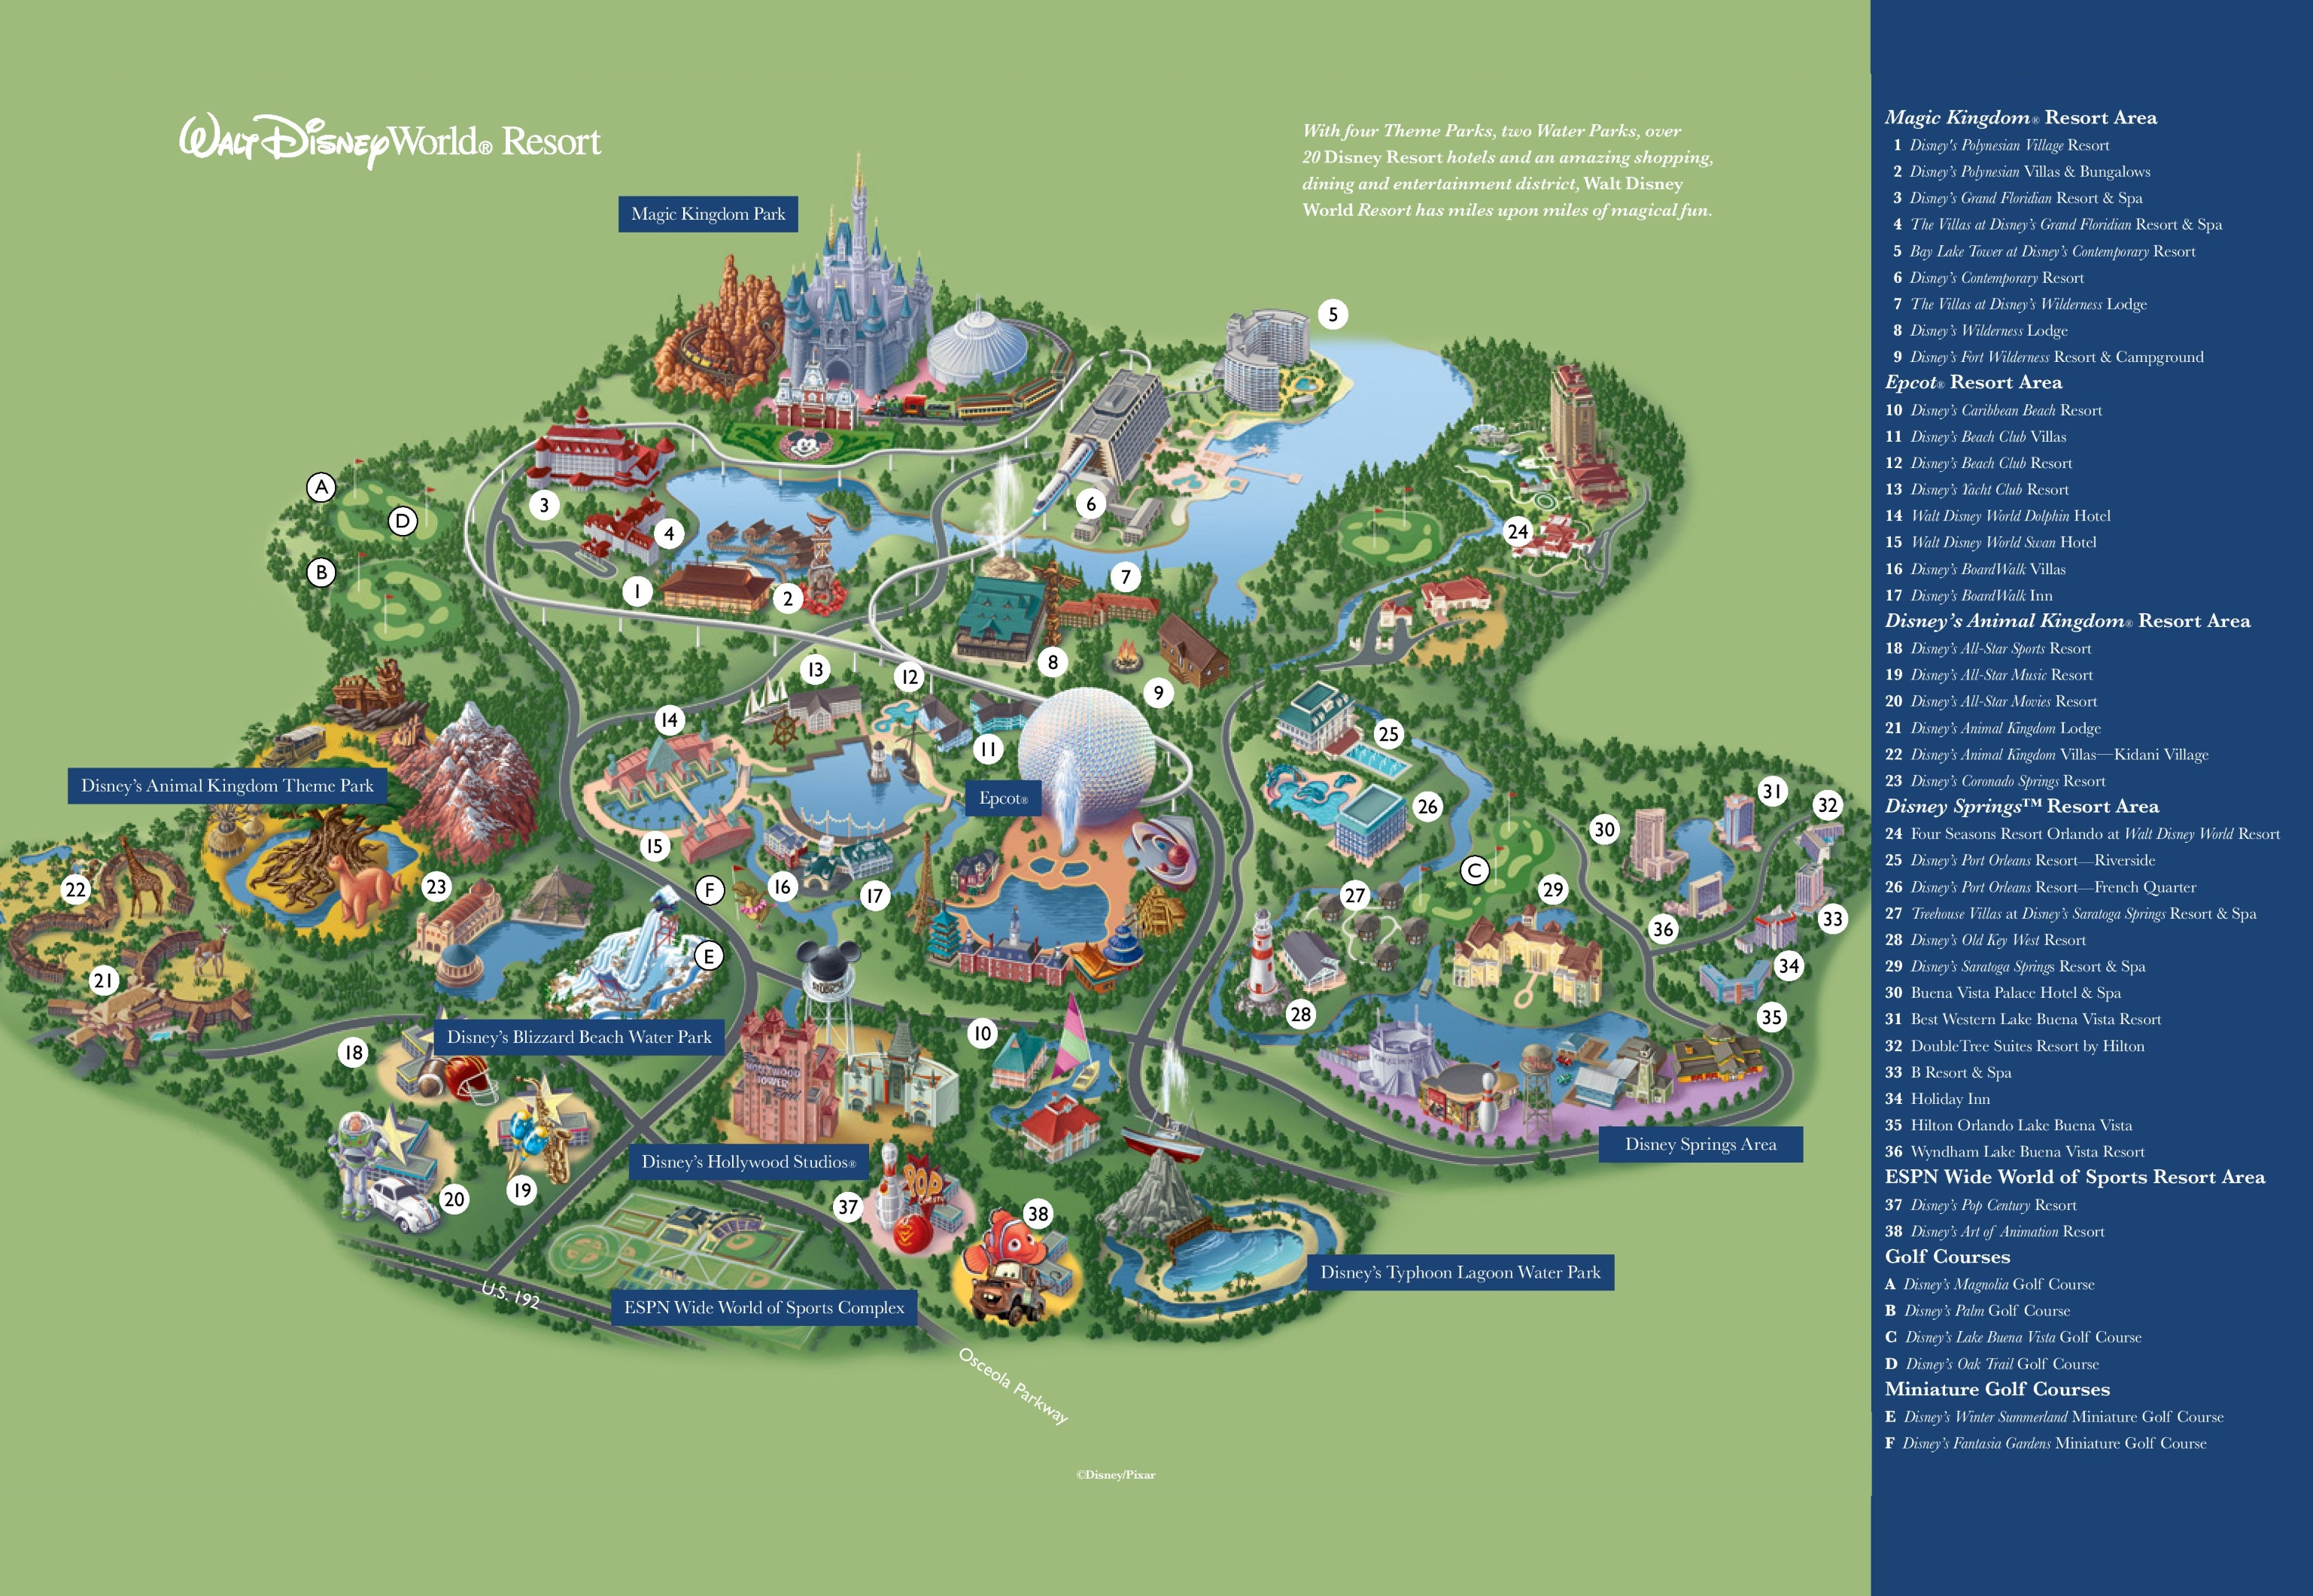 Disney World Orlando Map Orlando Walt Disney World Resort map